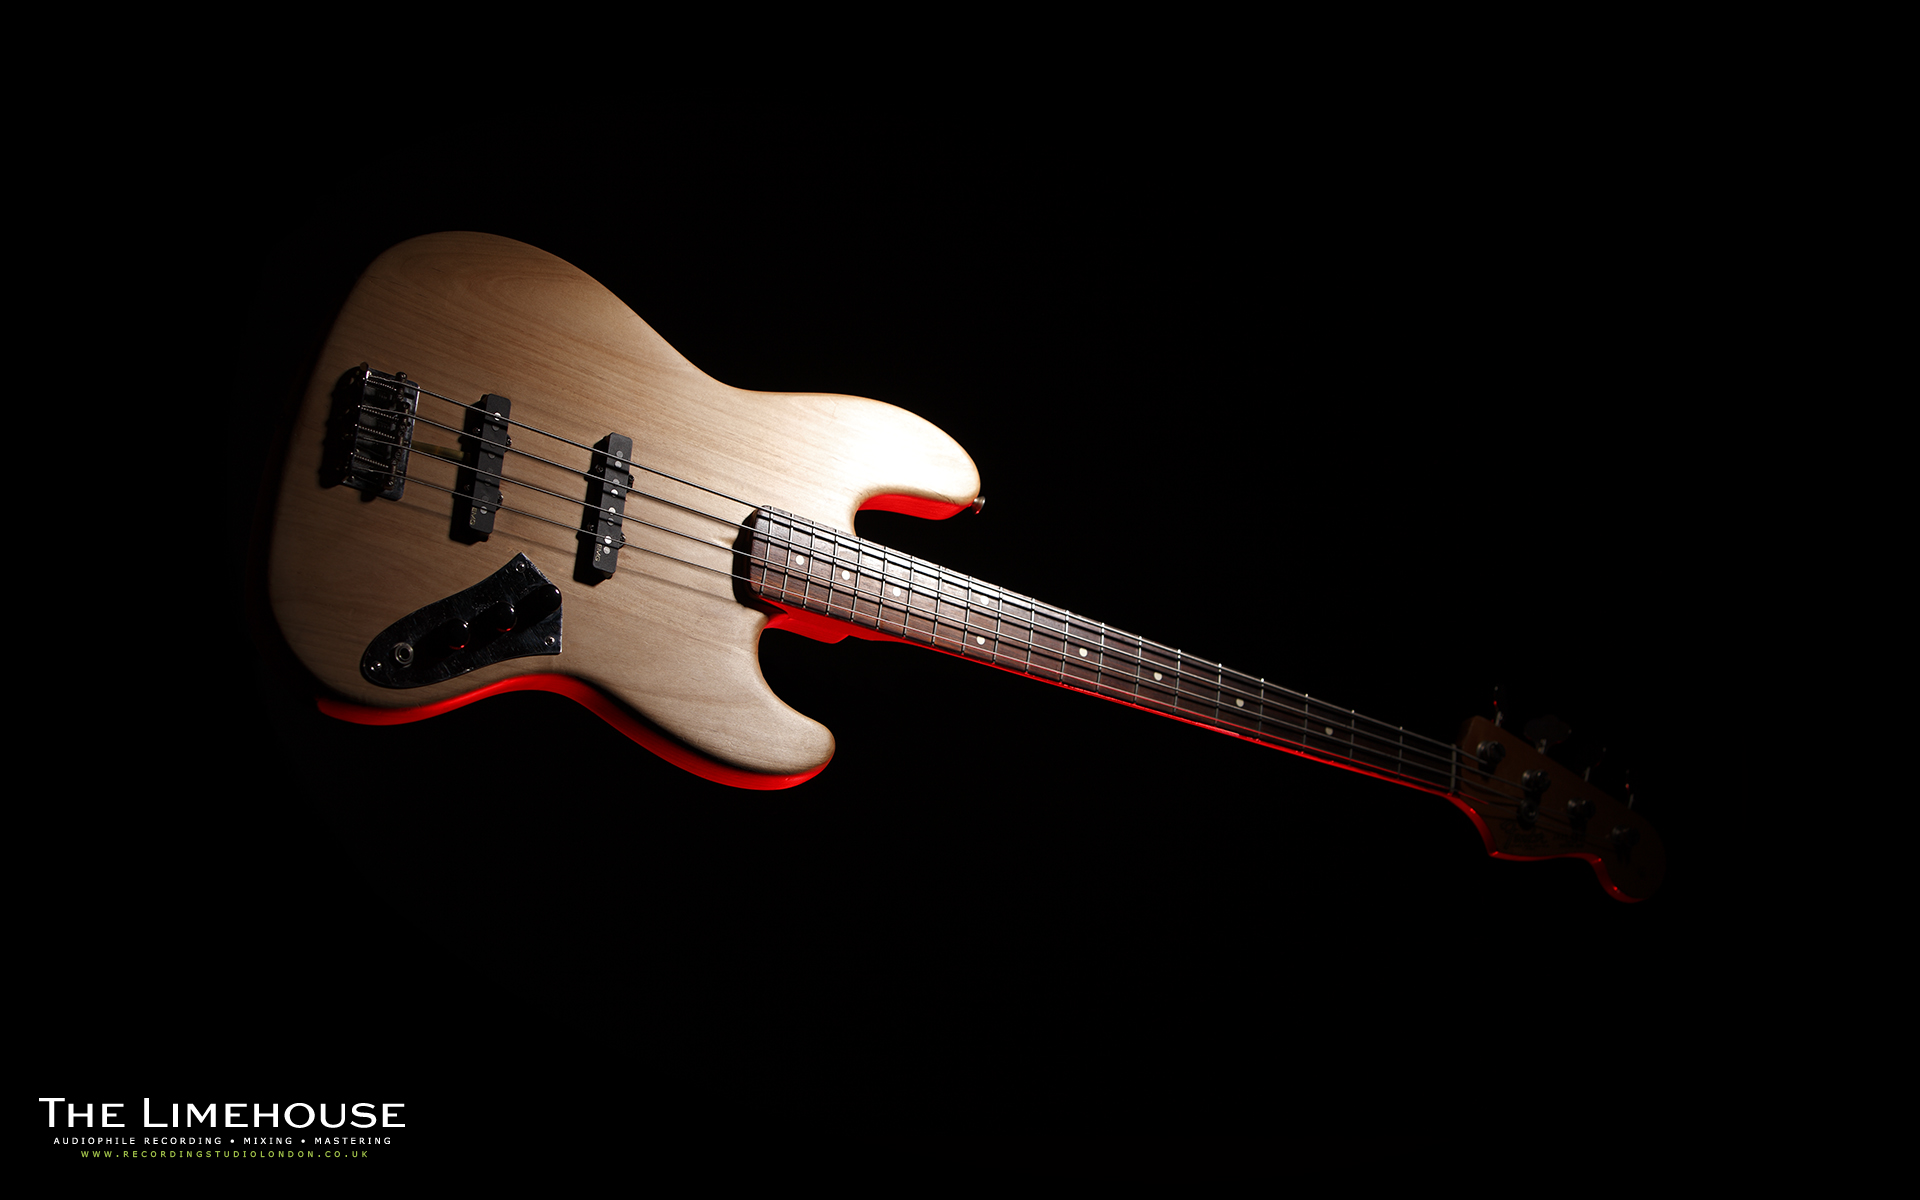 Bass Guitar Wallpaper Images amp Pictures   Becuo 1920x1200